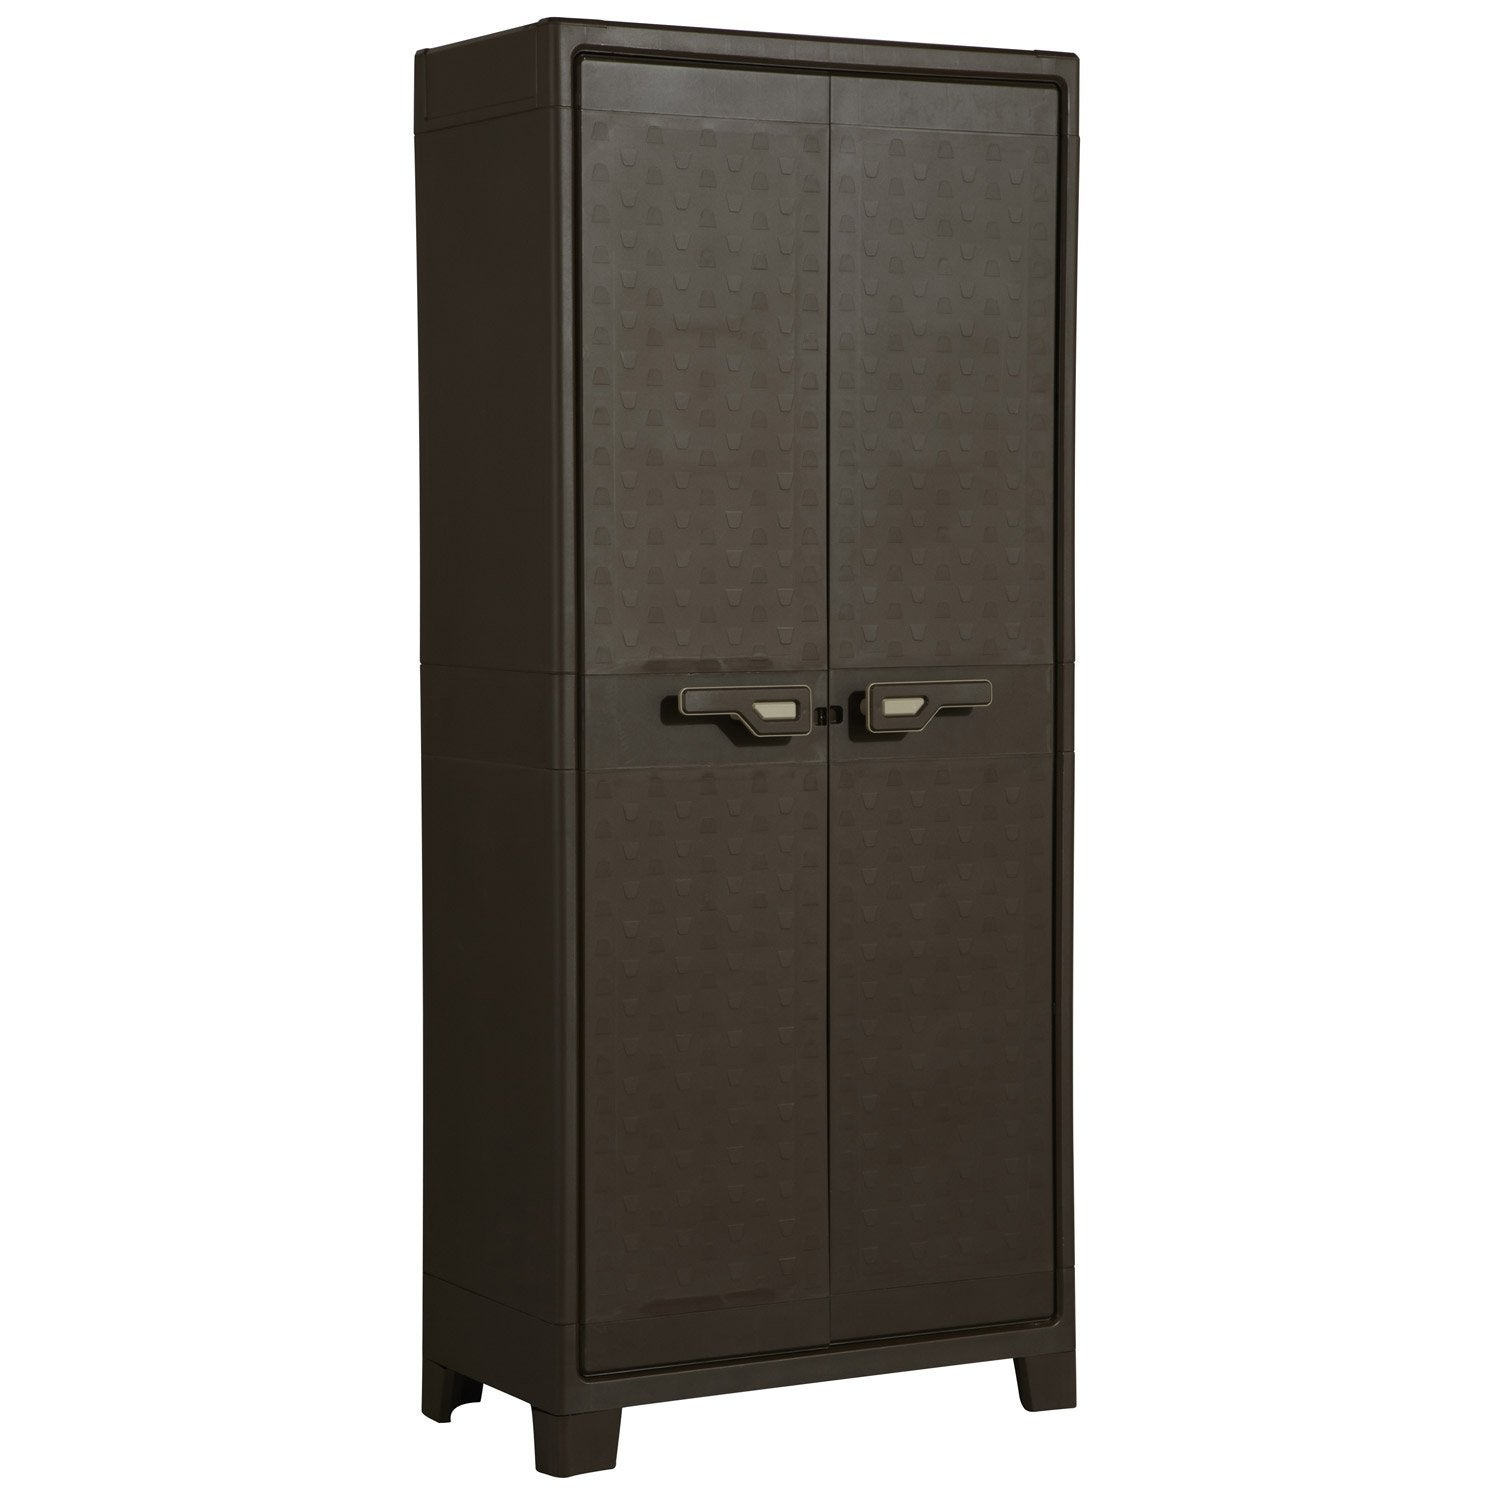 armoire de rangement en plastique leroy merlin maison. Black Bedroom Furniture Sets. Home Design Ideas